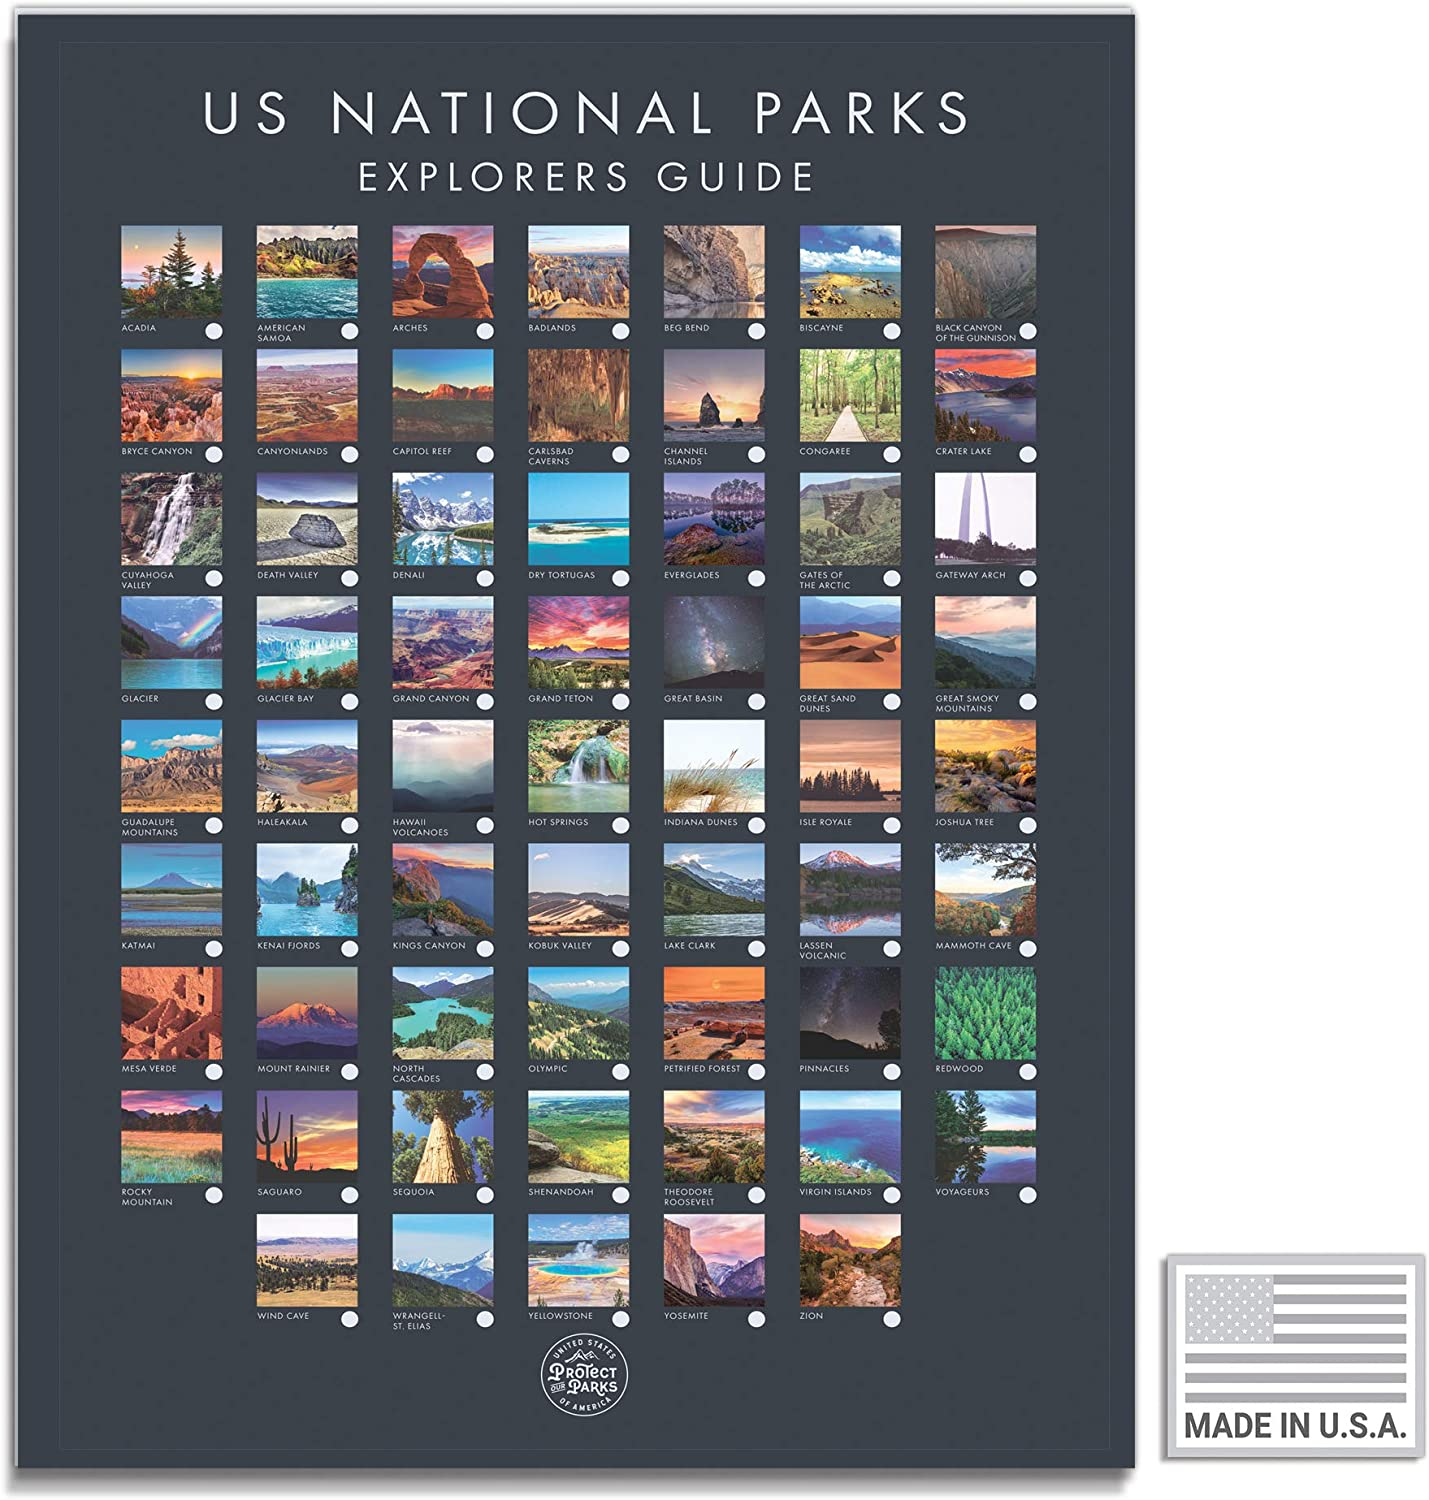 USA National Park Poster - Interactive Travel Map With All 61 US National  Parks - Made in the USA - Mark Your Travels Through Our Beautiful National  ...